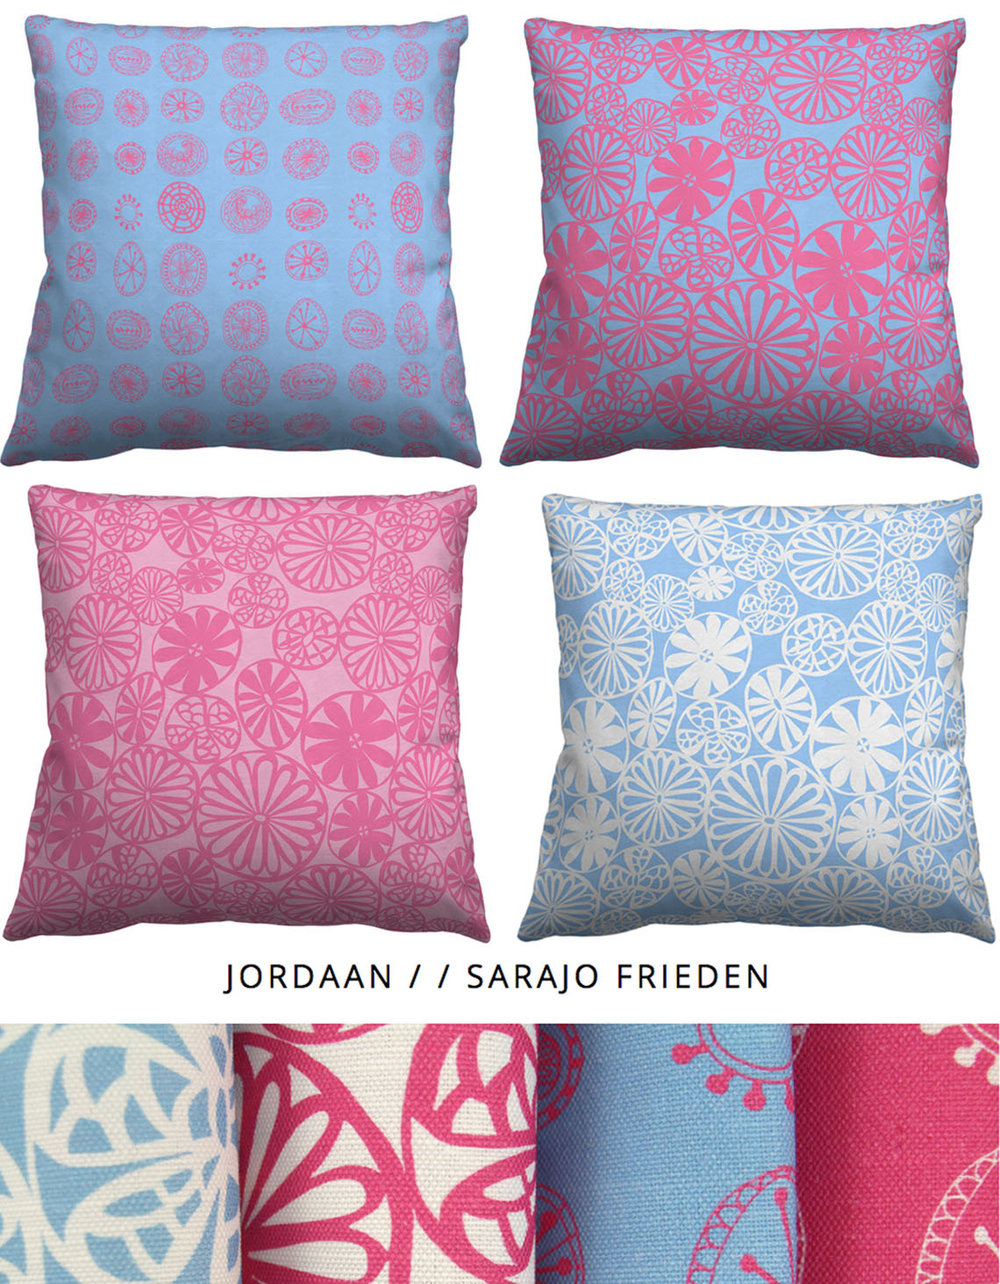 New for 2015! My third collection launched Jordaan collection for Guildery